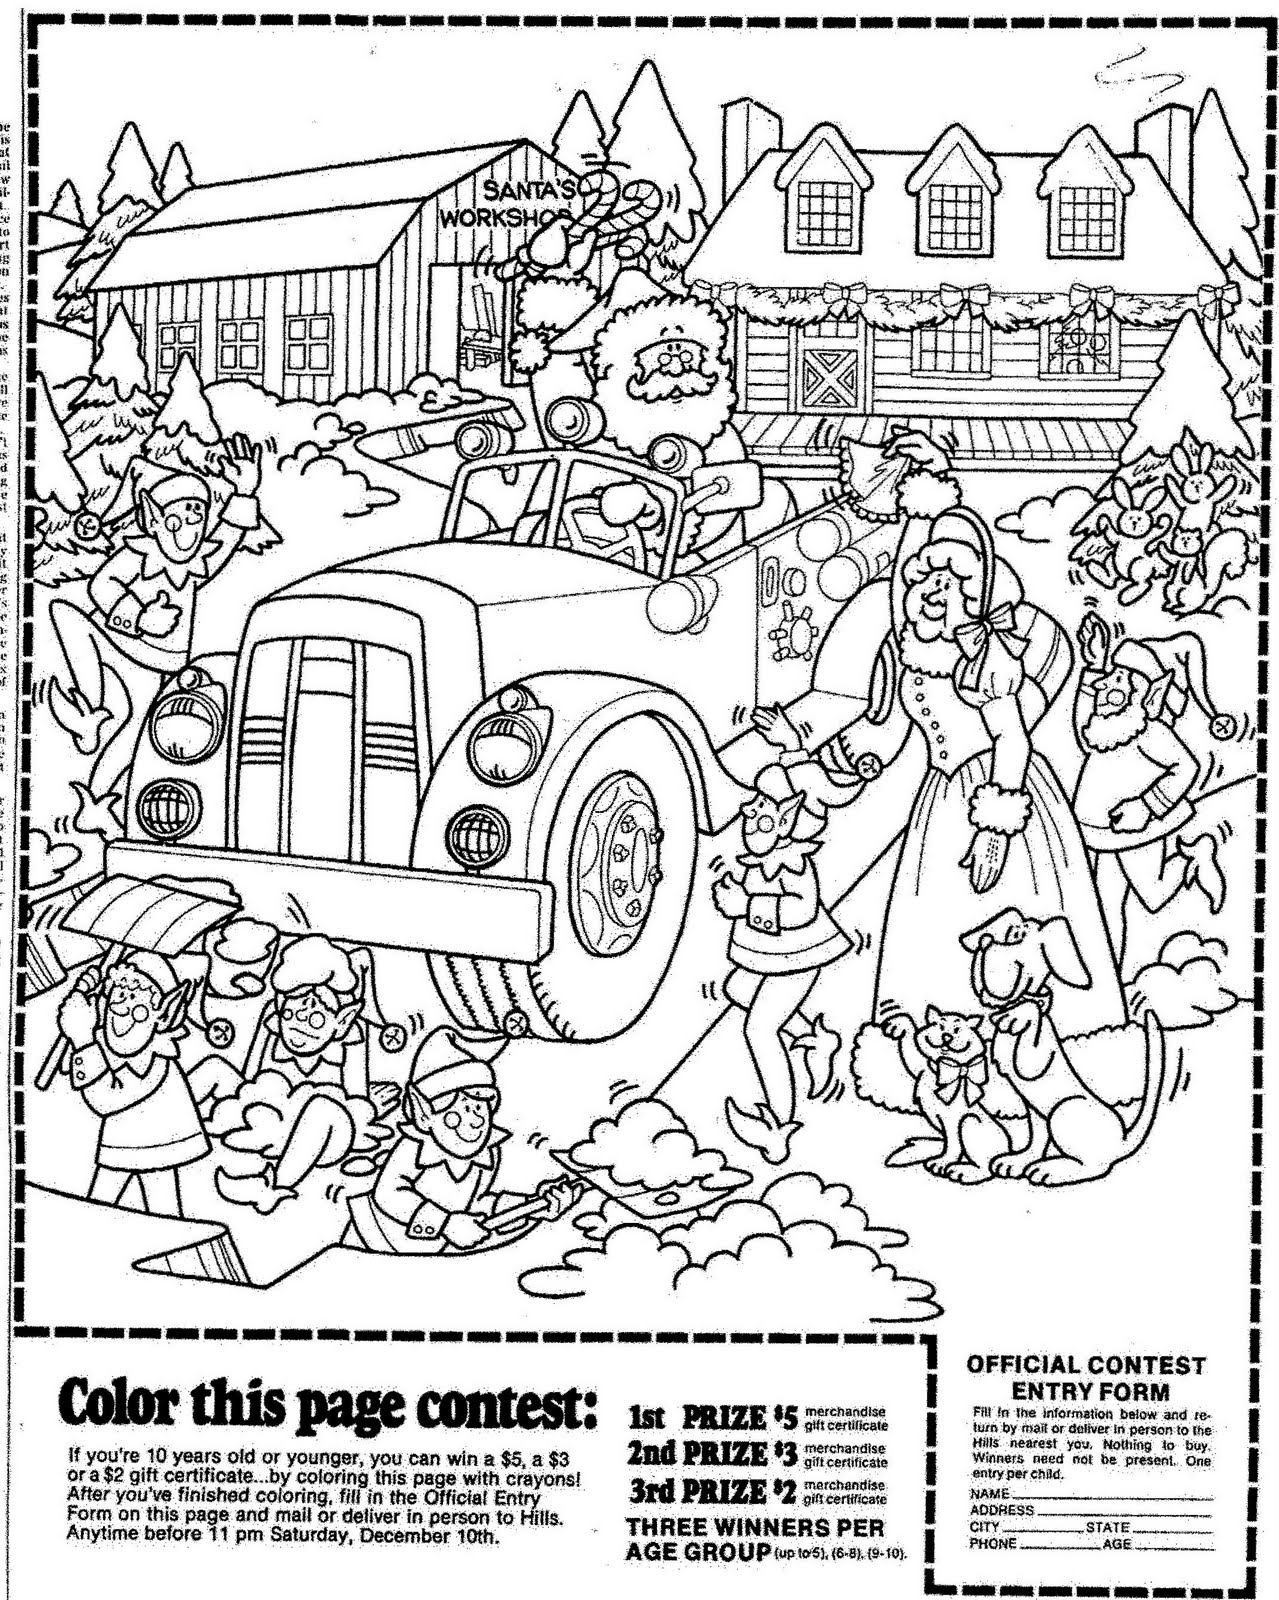 hills christmas coloring contest 1977